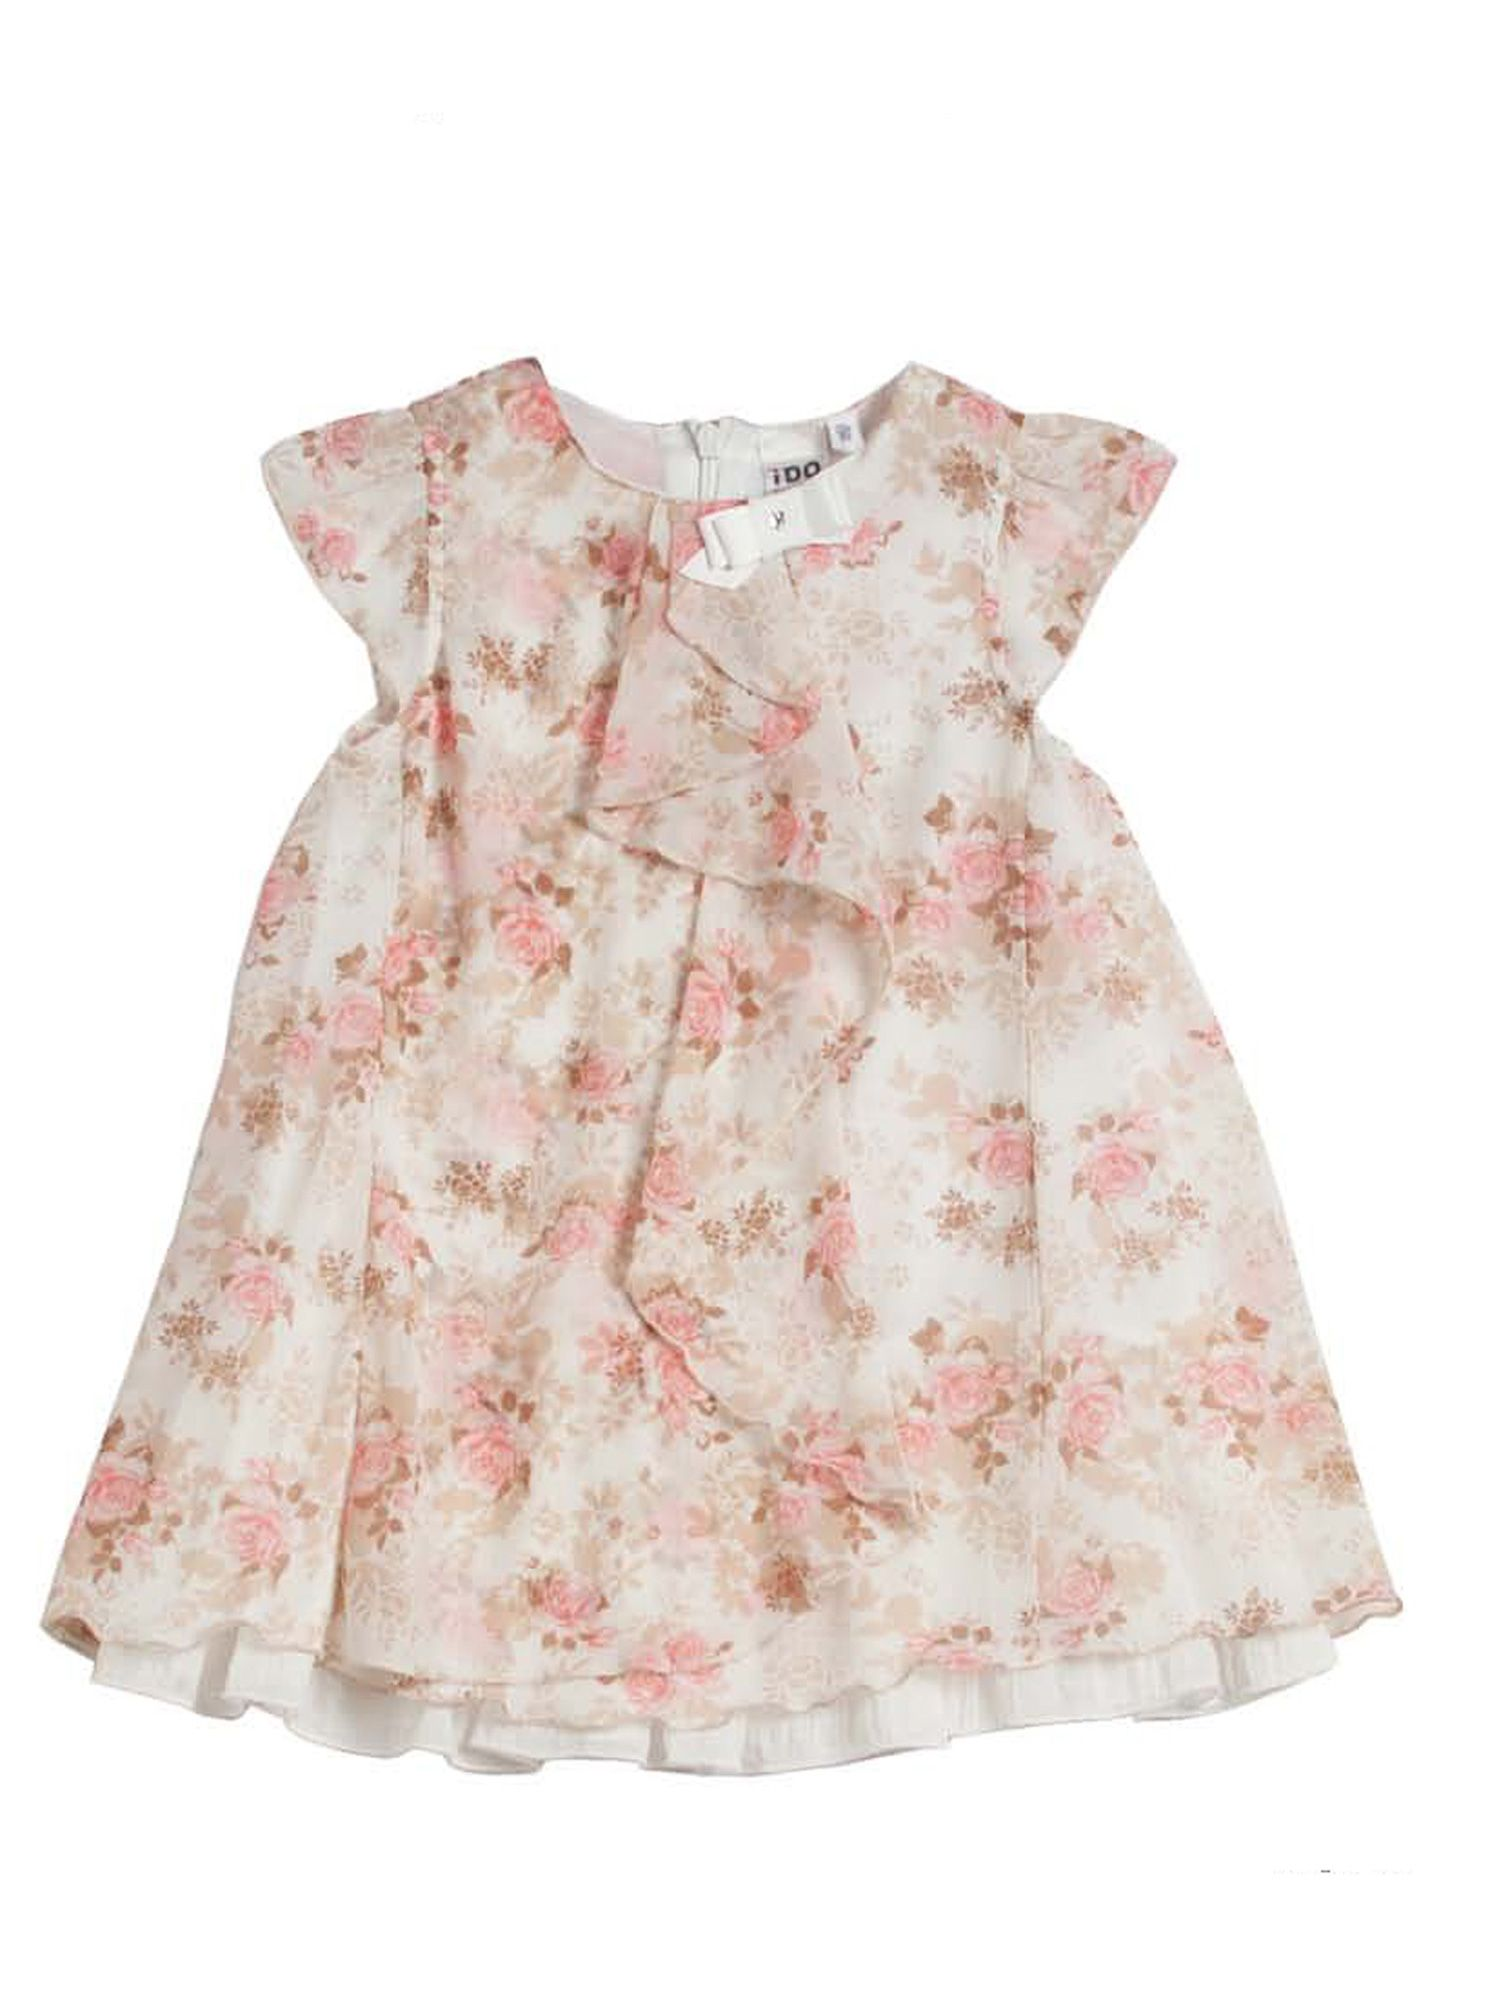 Girls flowery printed chiffon dress